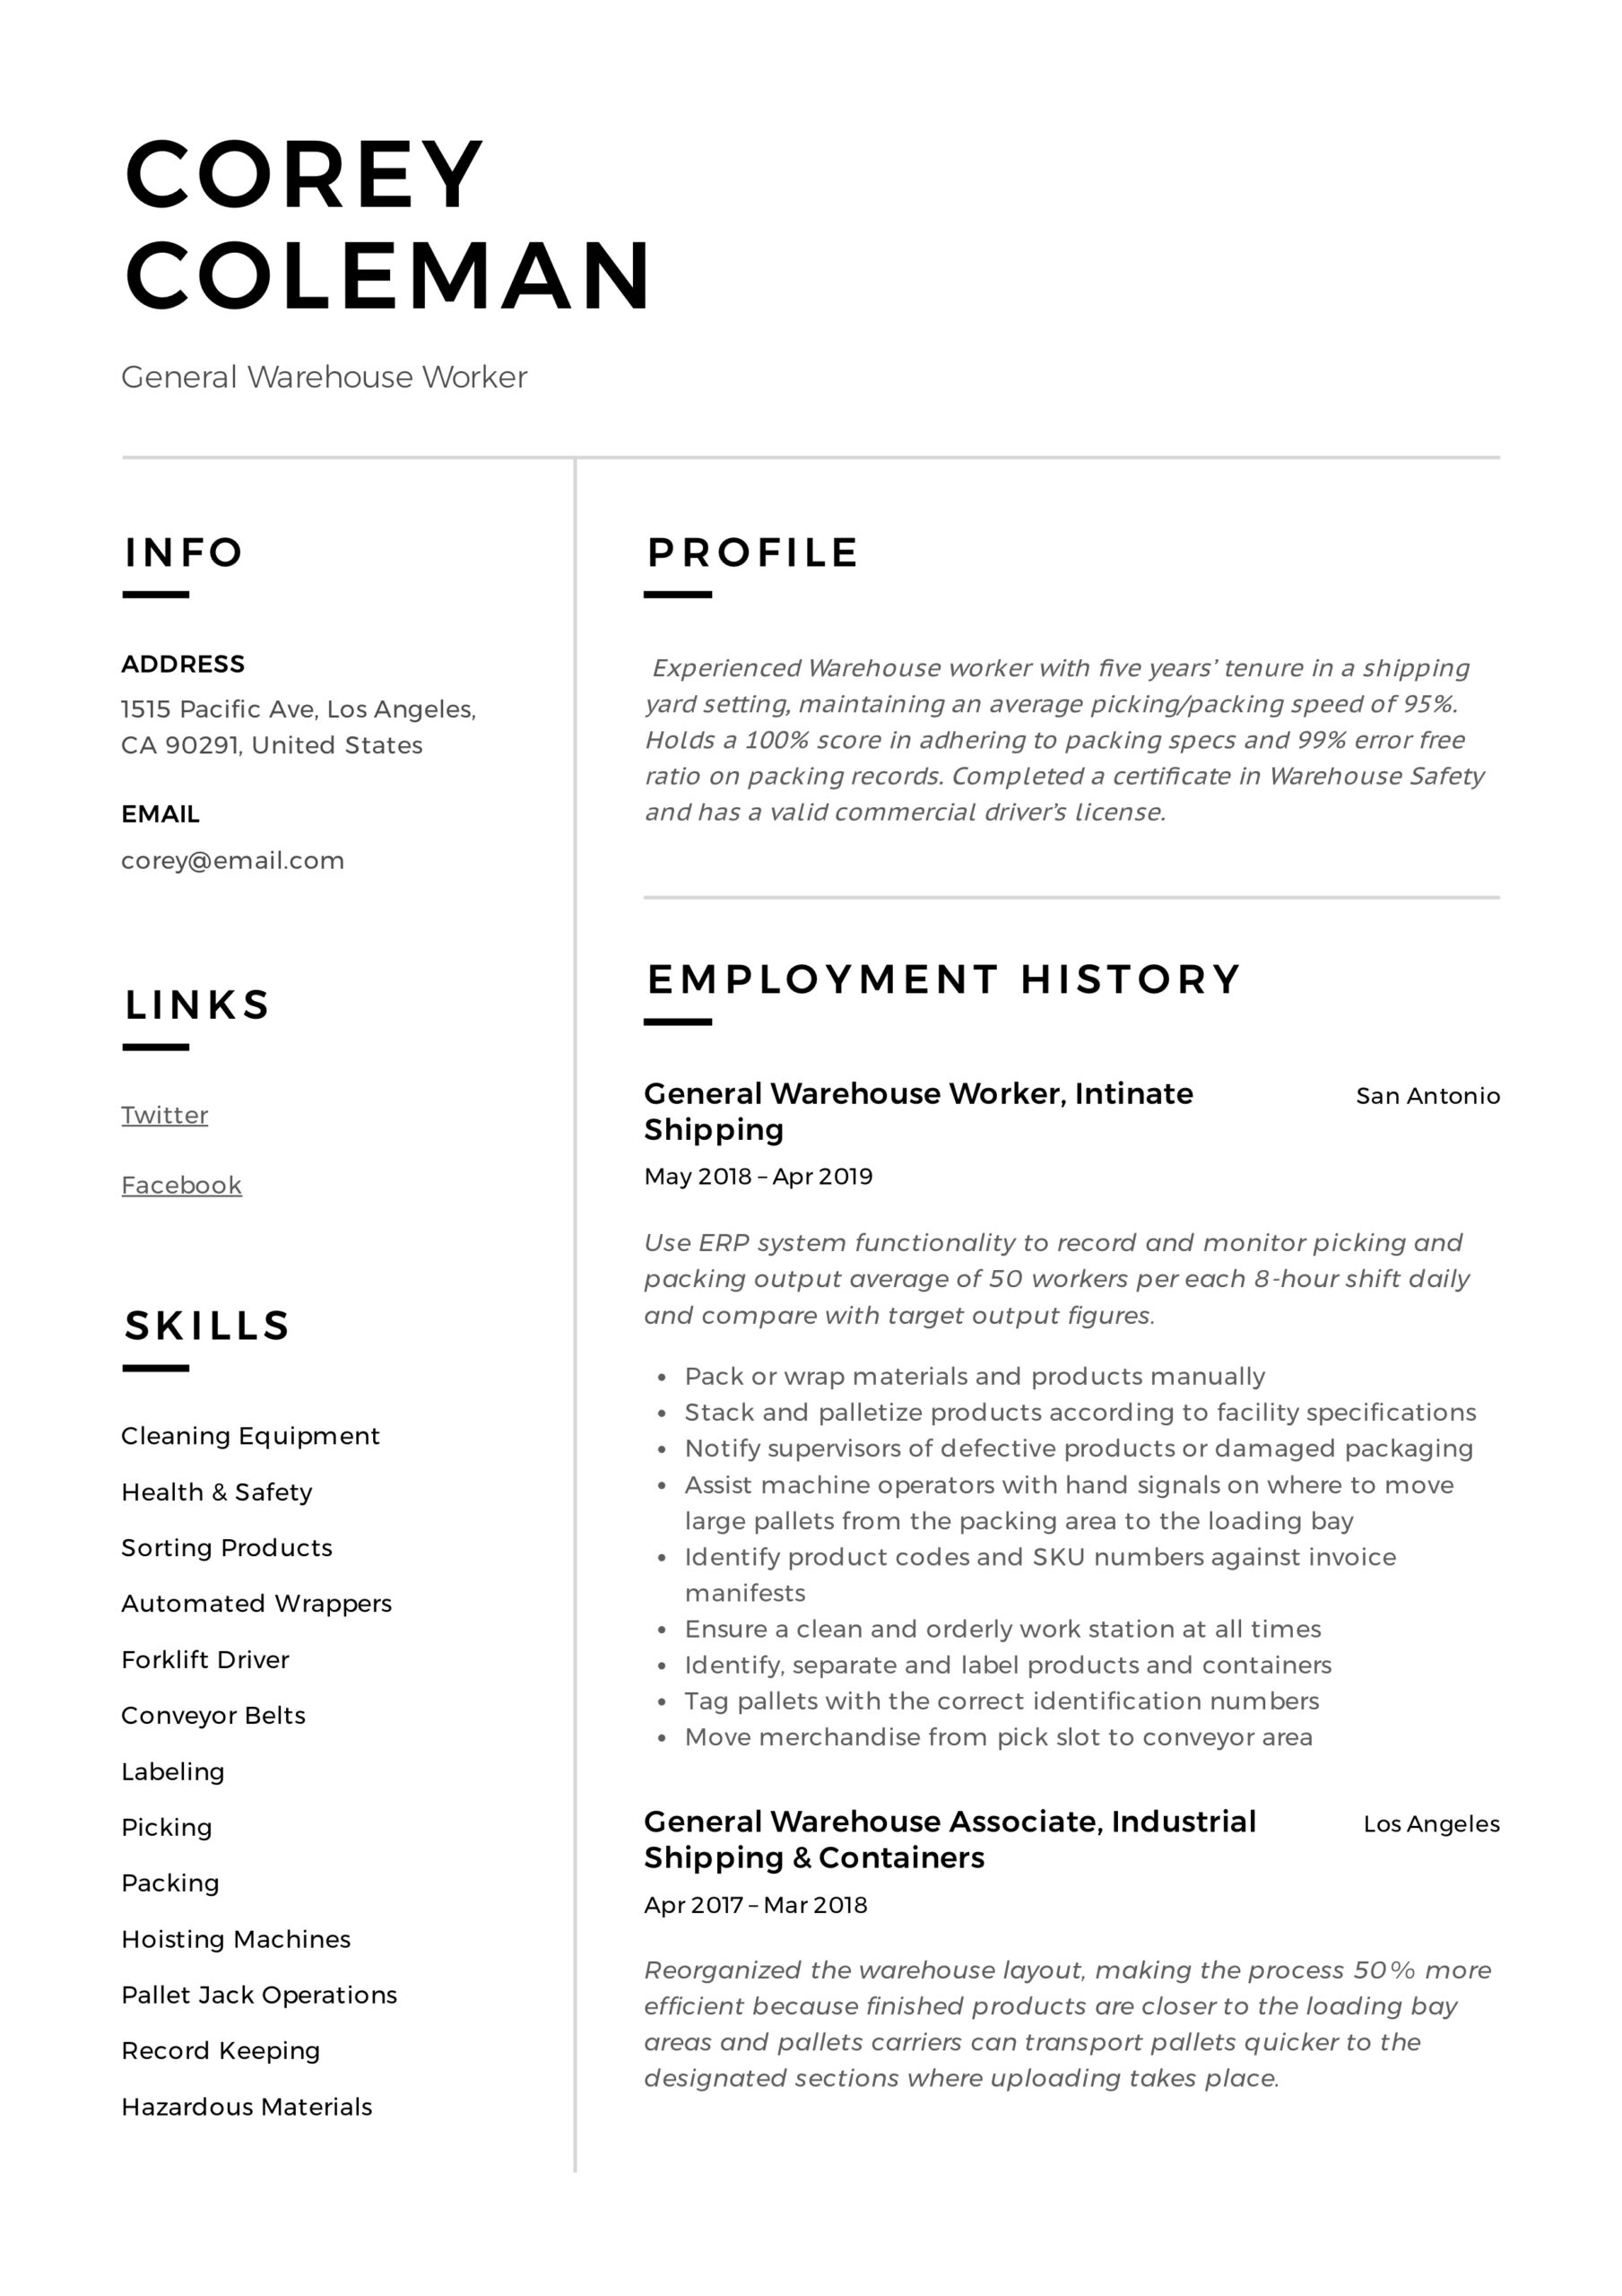 general warehouse worker resume guide templates good for job corey latest trends outline Resume Good Resume For Warehouse Job